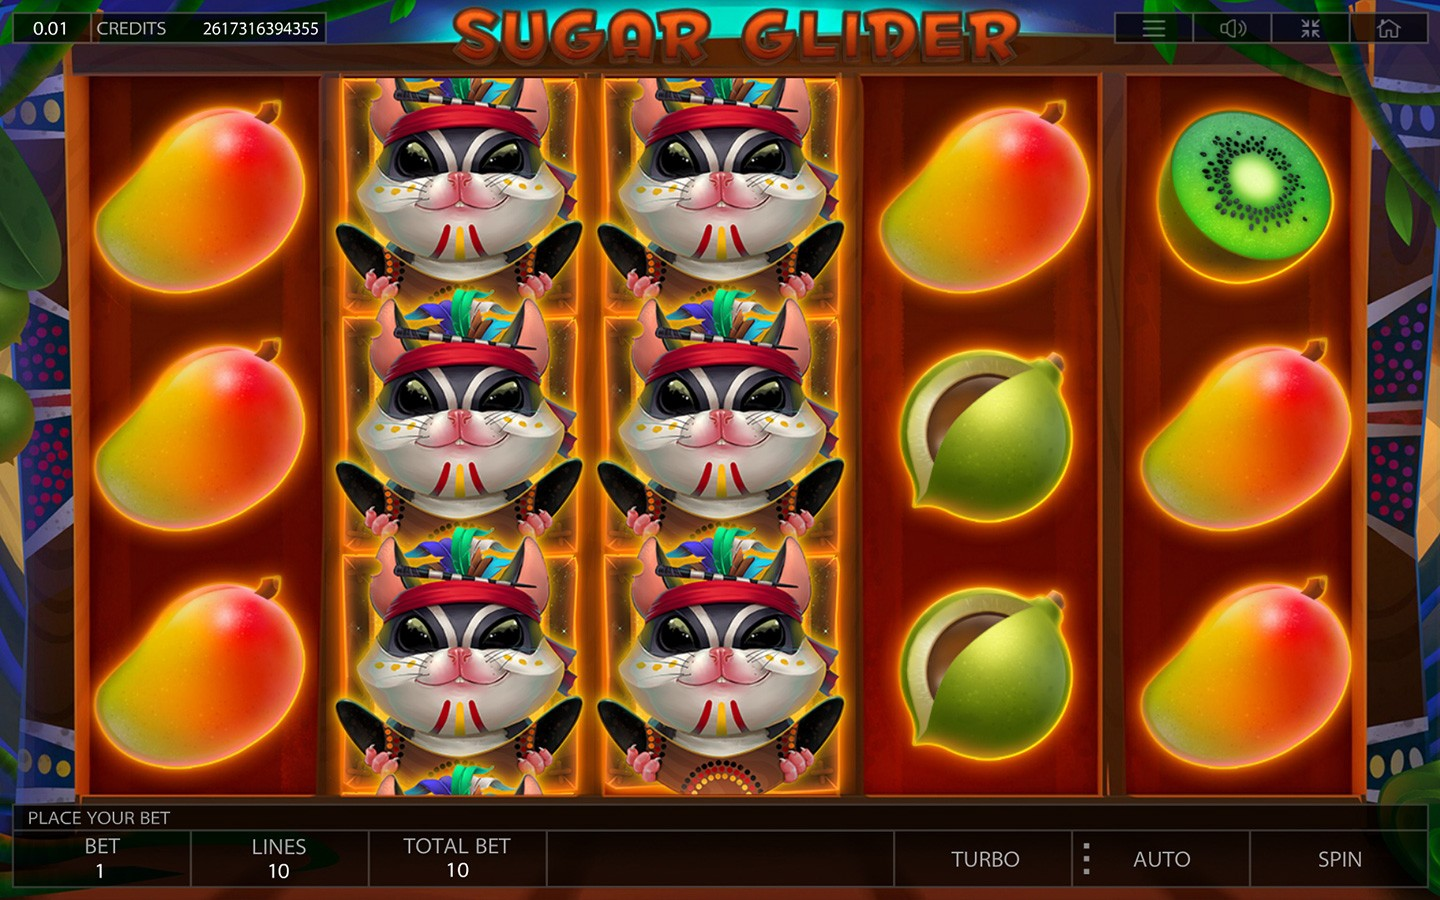 New Slots For Free! Glide your way towards big wins with Sugar Glider!